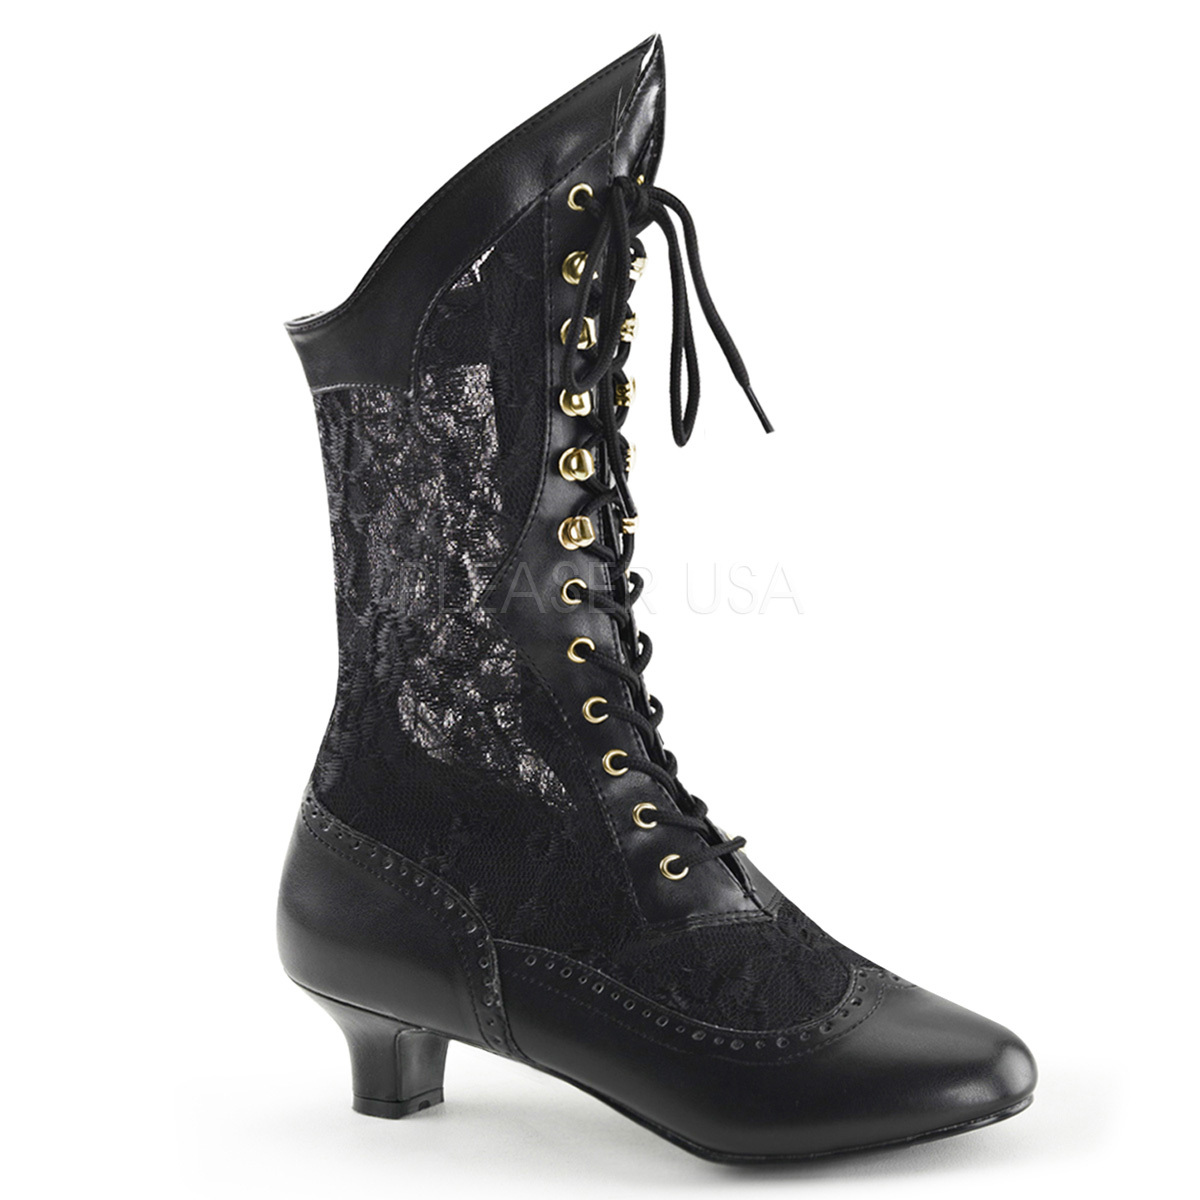 "FUNTASMA Dame-115 Series 2"" Heel Ankle-High Boot - Black Pu-Lace"